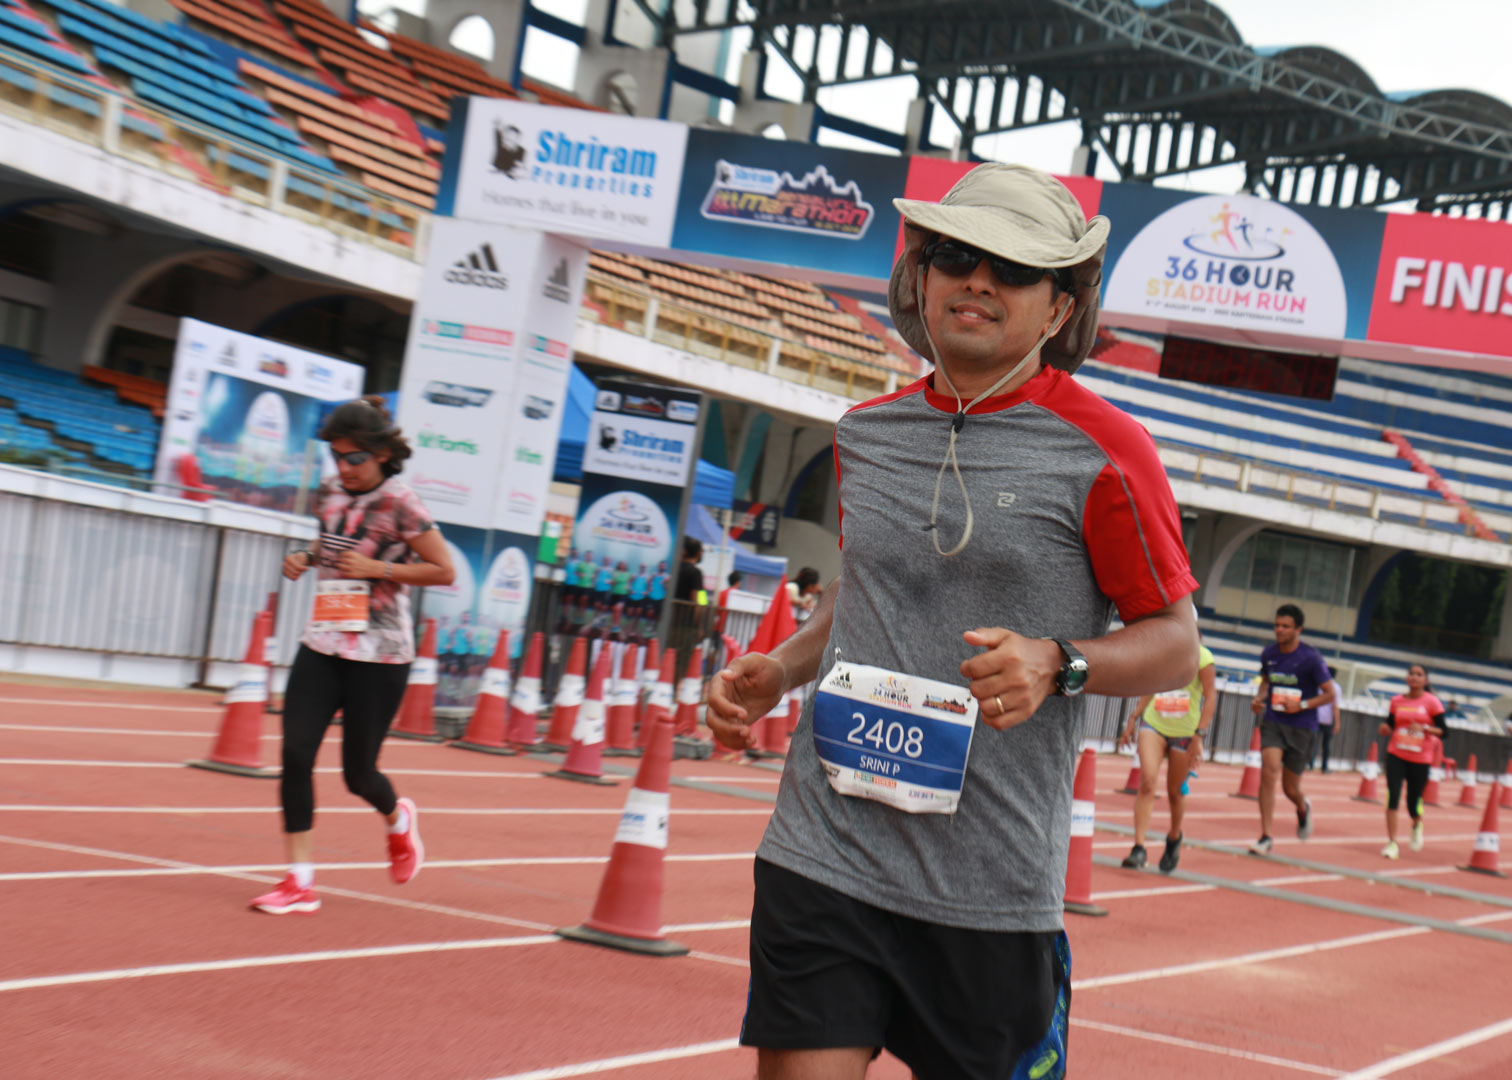 Runner Srini as chilled as ever during the 36 hour stadium run